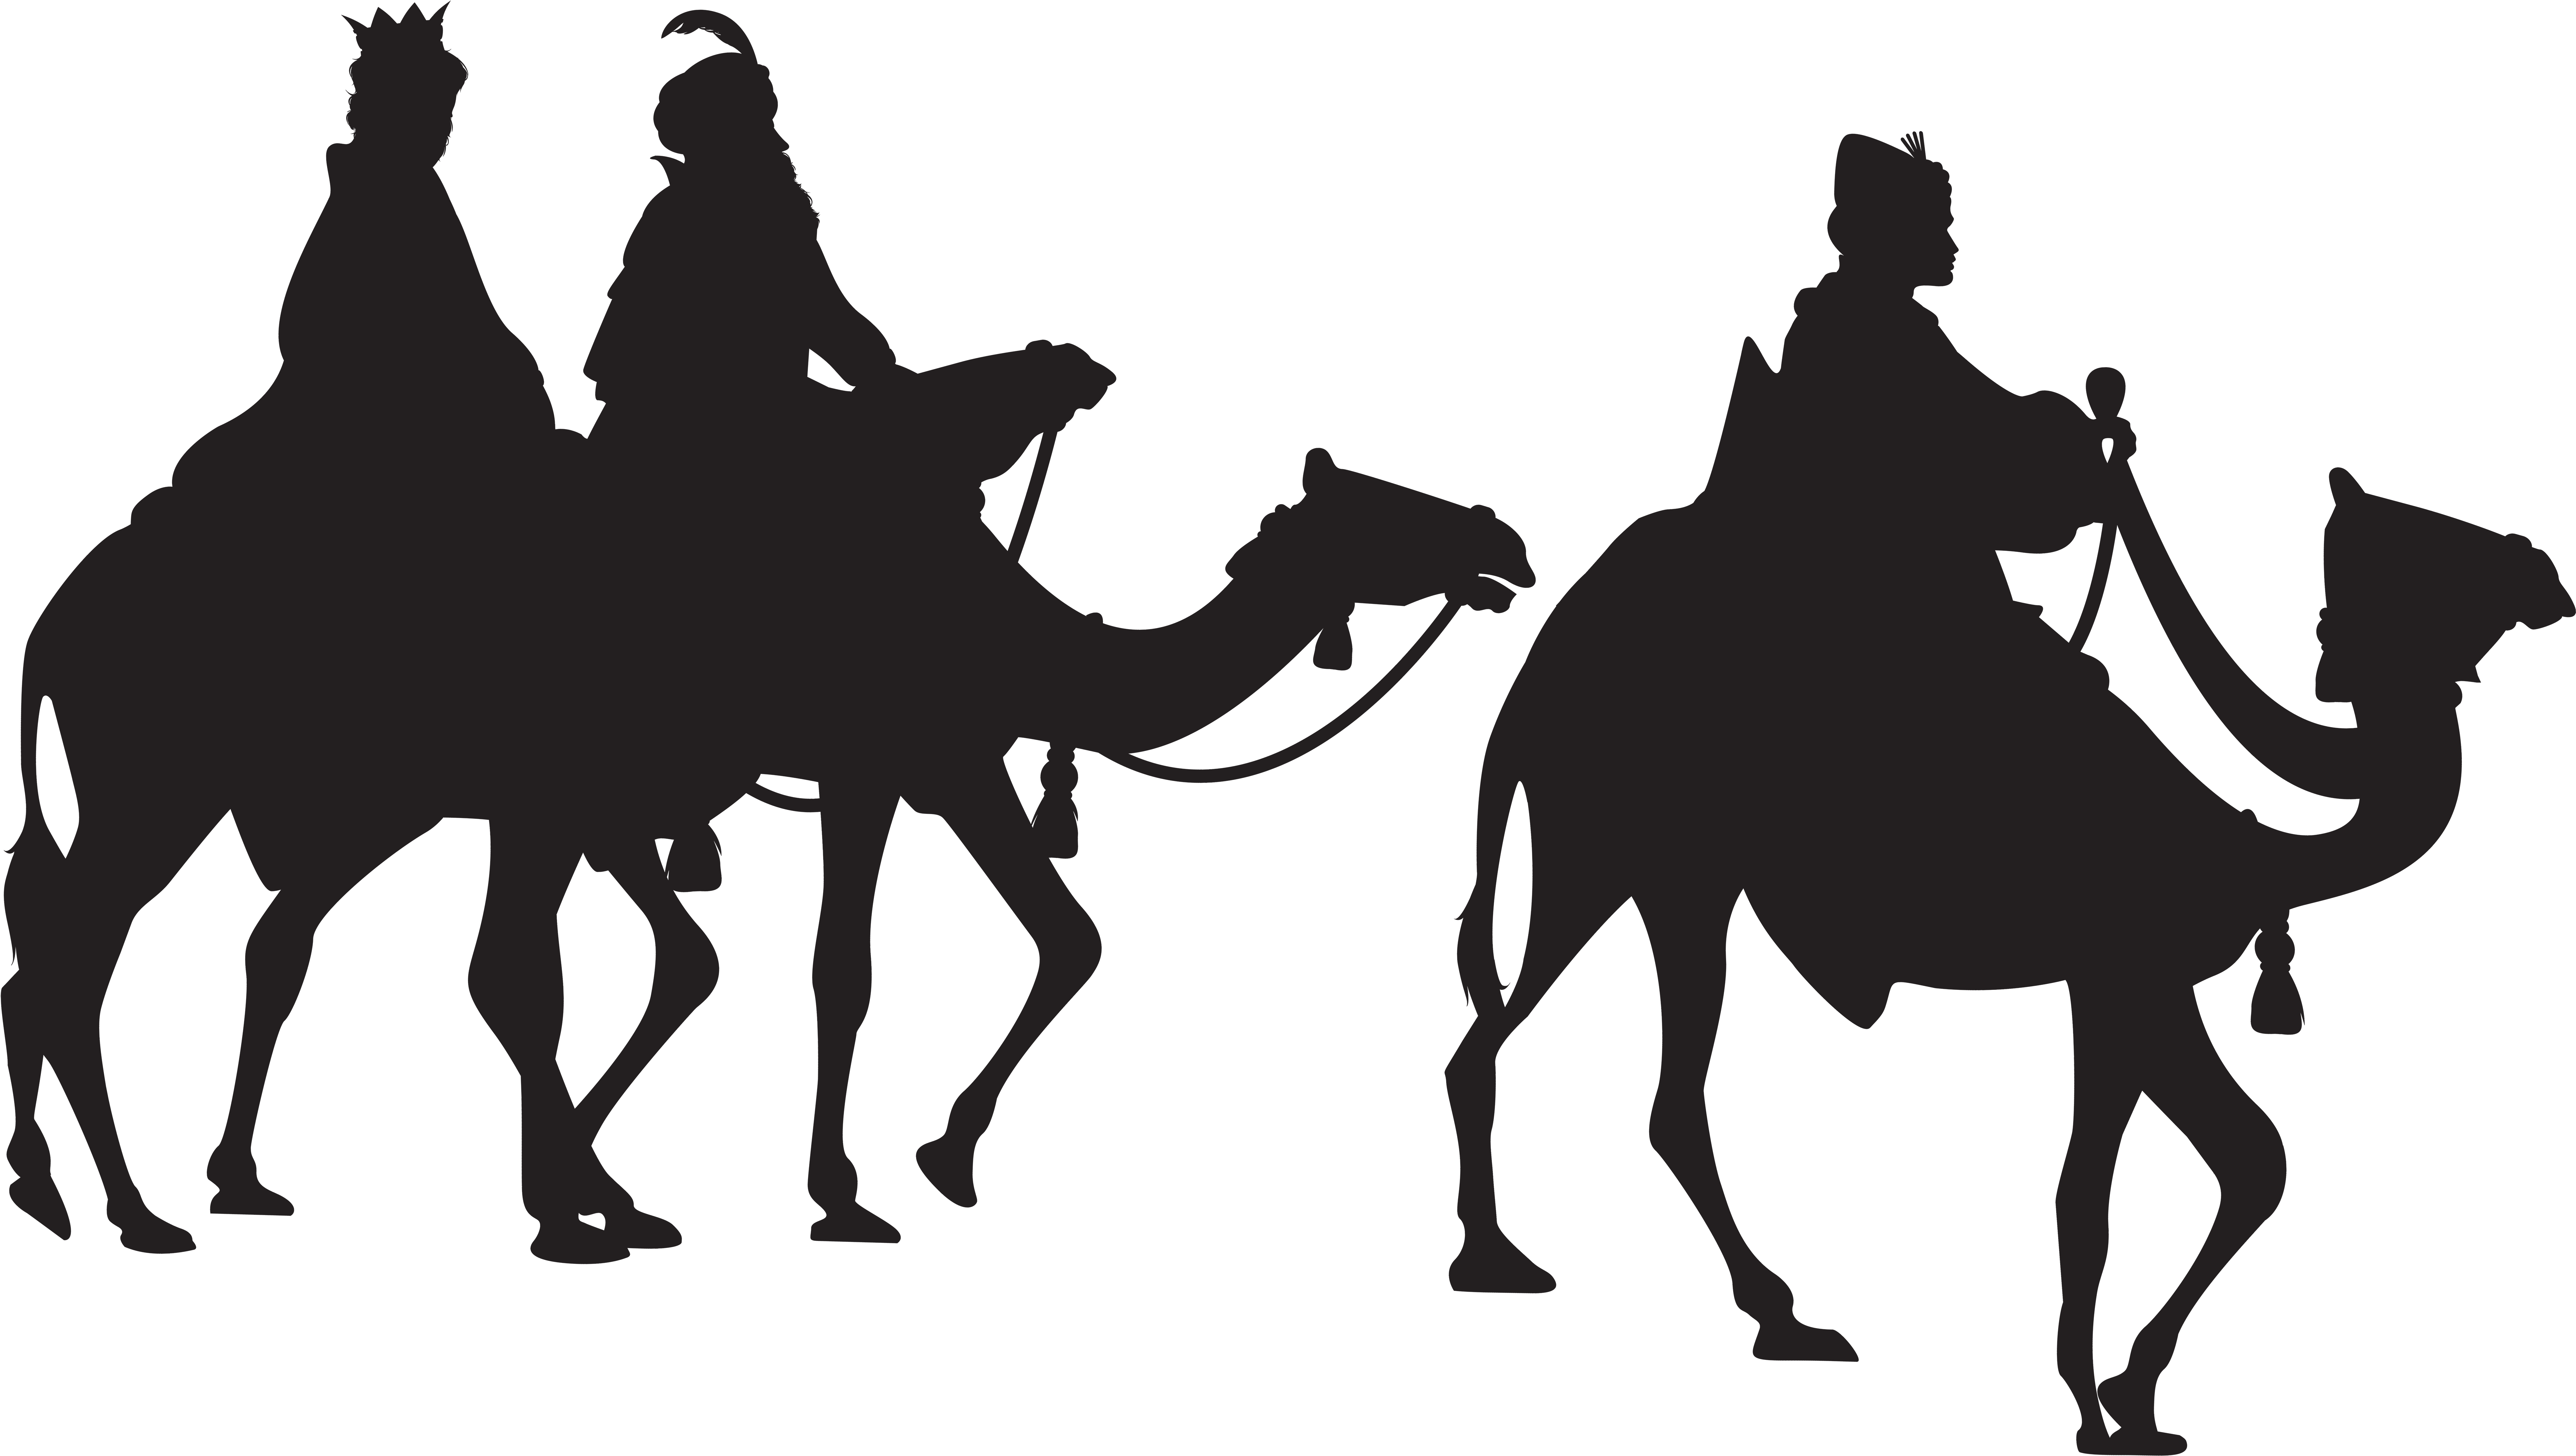 Three silhouette png clip. 3 clipart kings jpg royalty free download